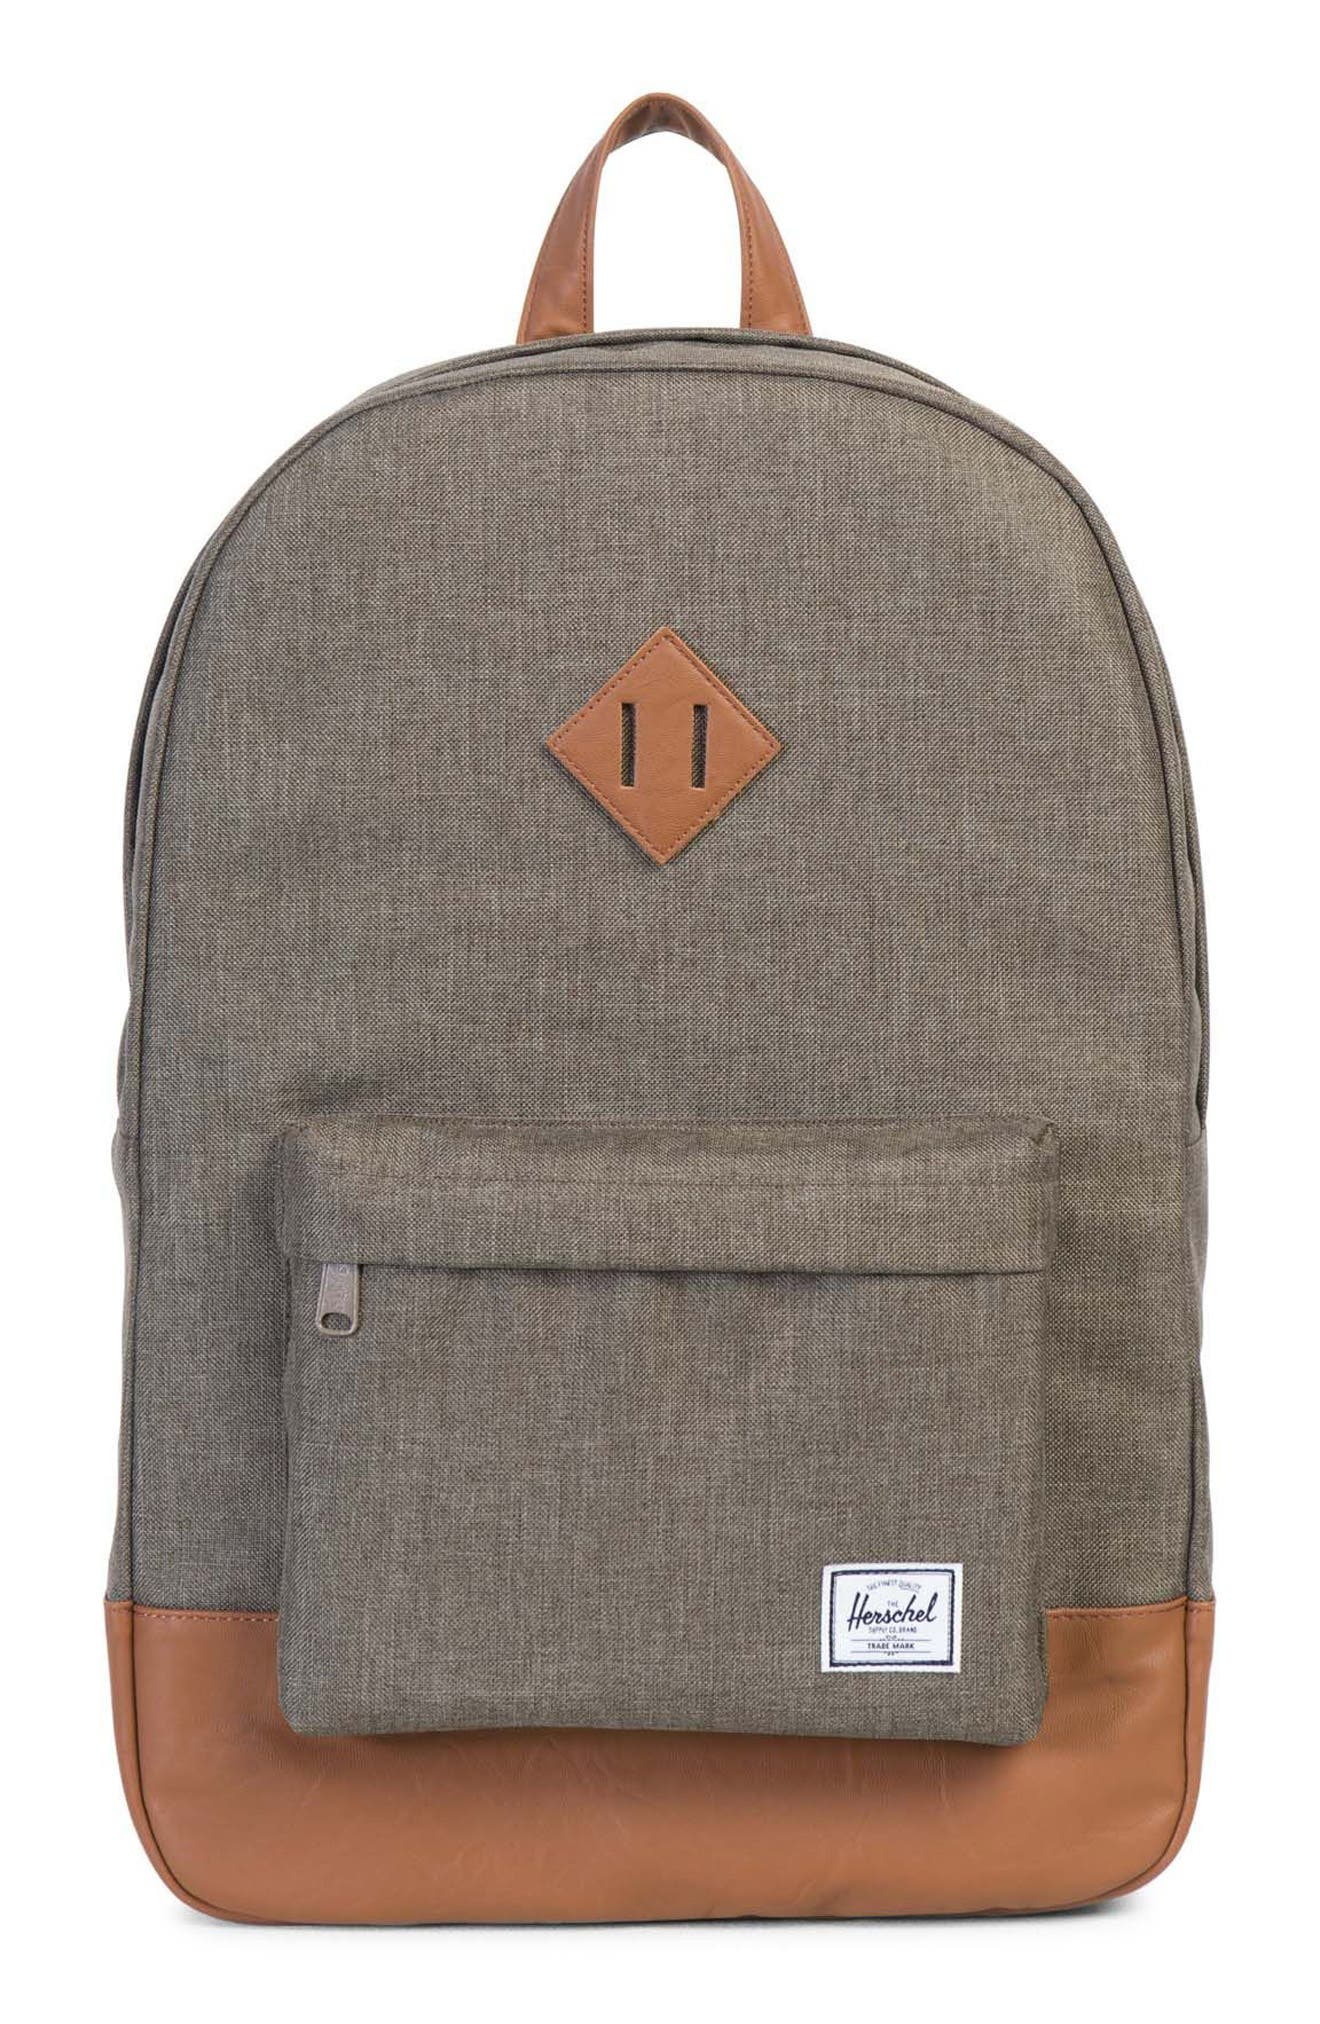 Heritage Backpack,                             Main thumbnail 1, color,                             218